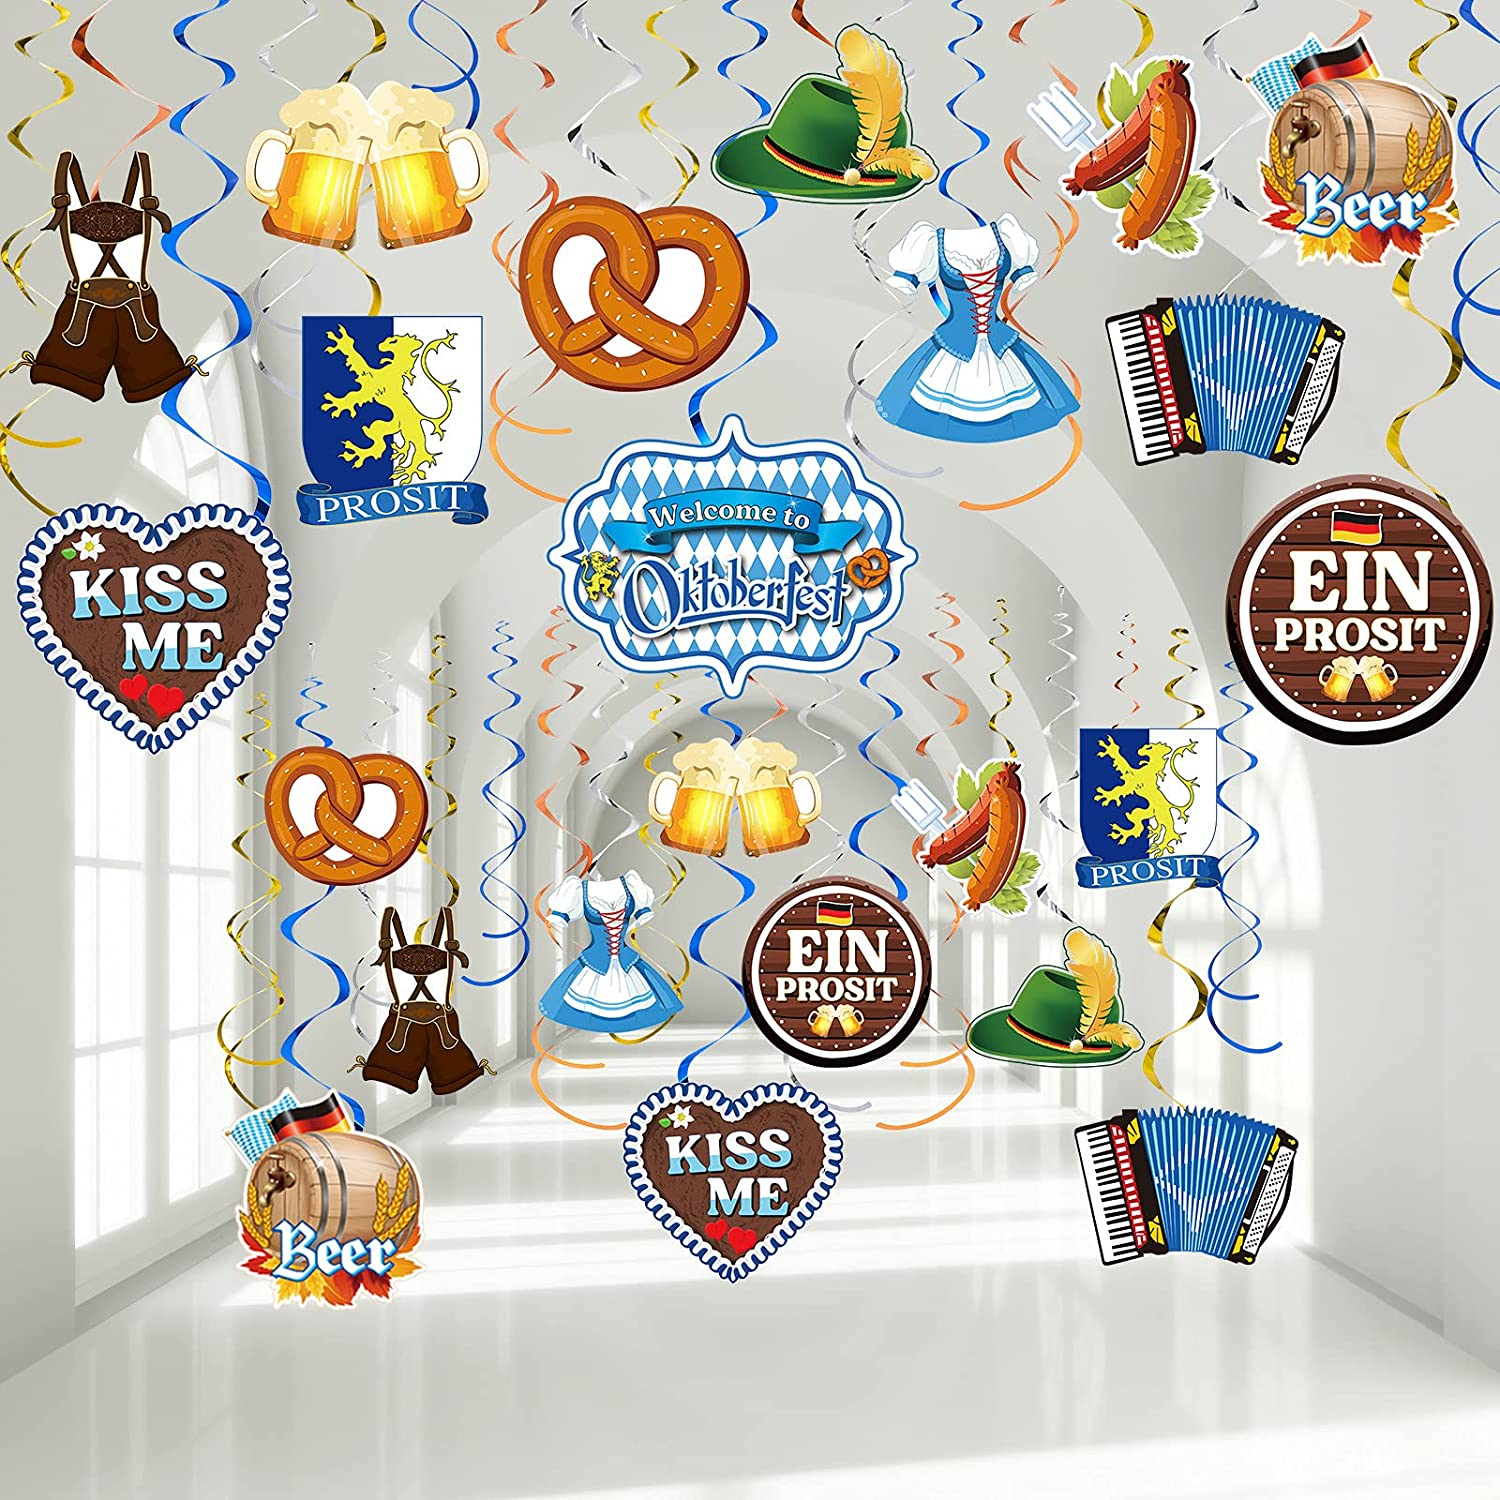 30 Pieces Oktoberfest Party Swirl Decorations Oktoberfest Hanging Whirl Streamers German Beer Hanging Decor Wiesenthal Beer Sausage, Beer, Gold Dress, Leather Pants Hanging Festival Party Supplies